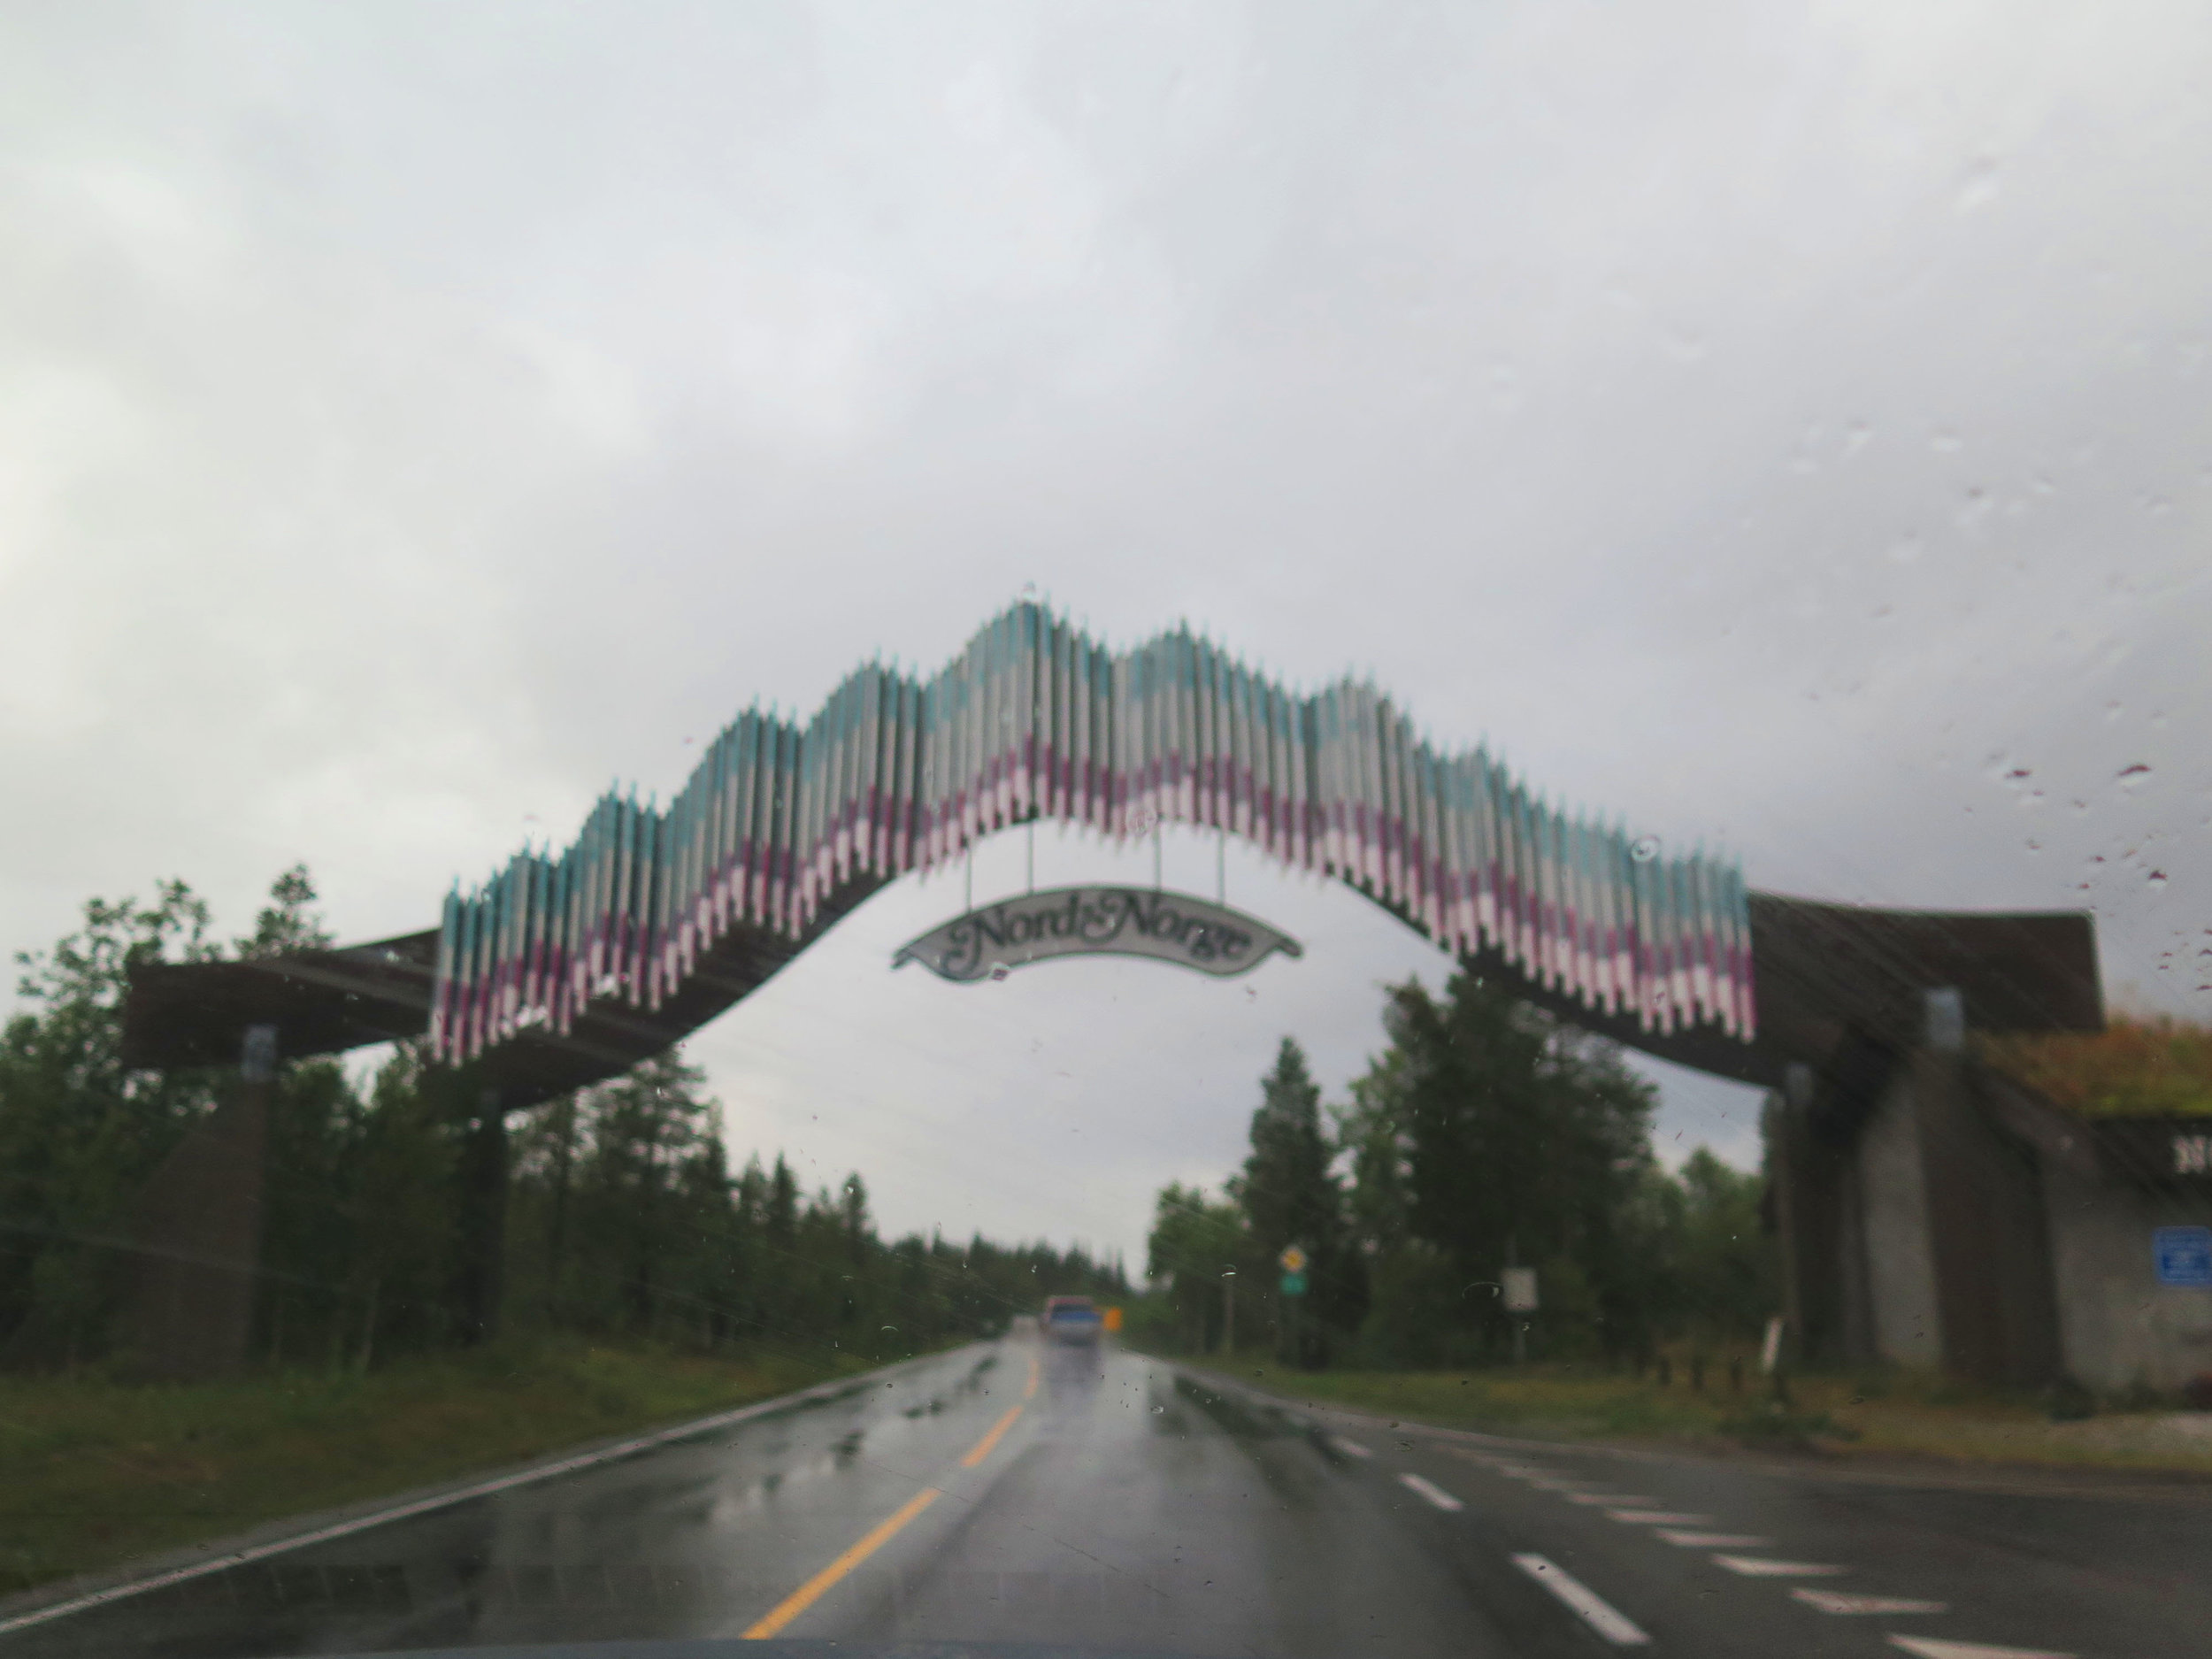 Passing through the Nord Norge